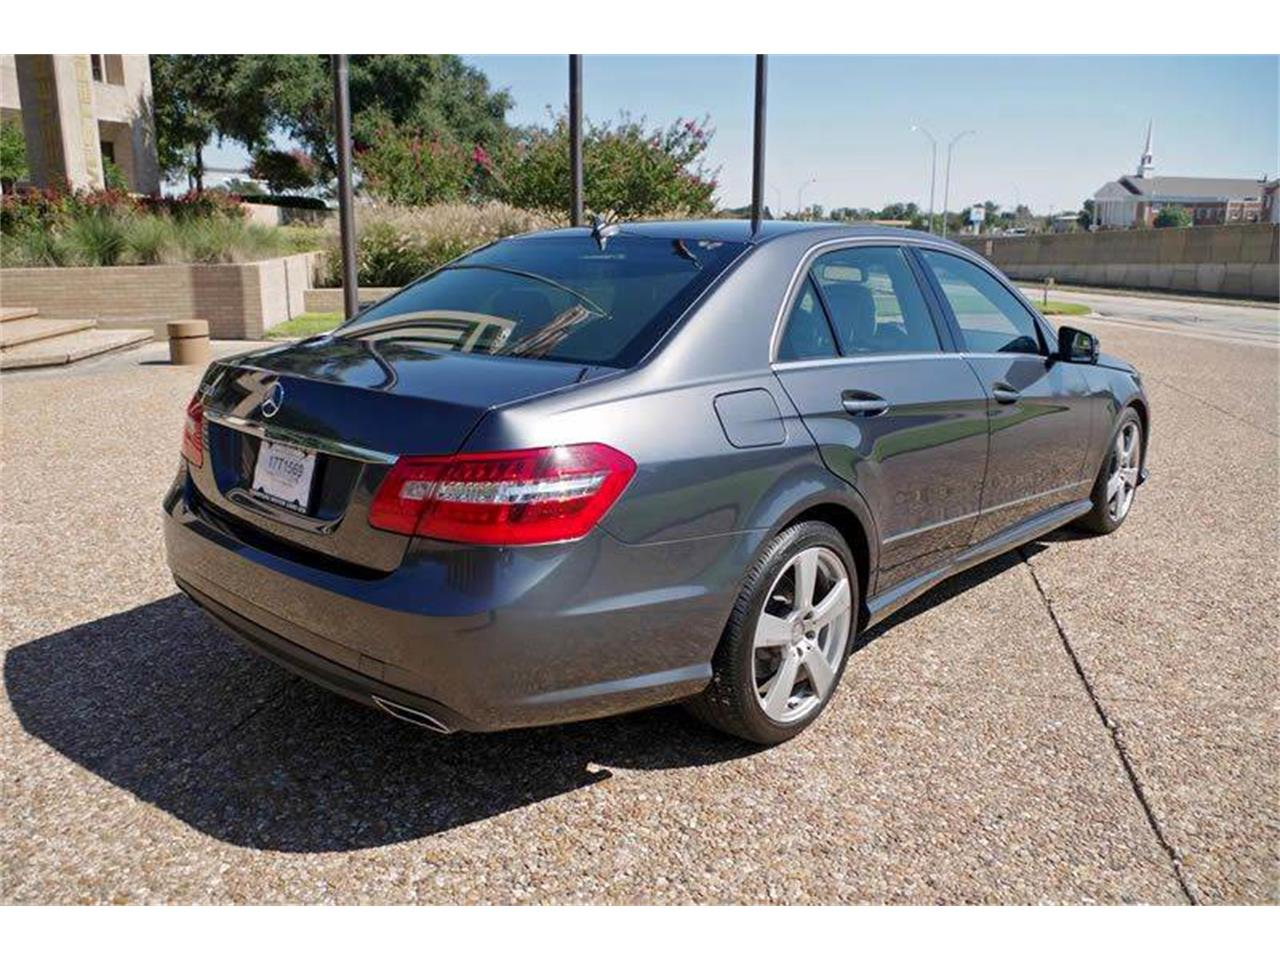 Large Picture of 2010 Mercedes-Benz E-Class located in Texas - $17,900.00 Offered by ABC Dealer TEST - JJM0